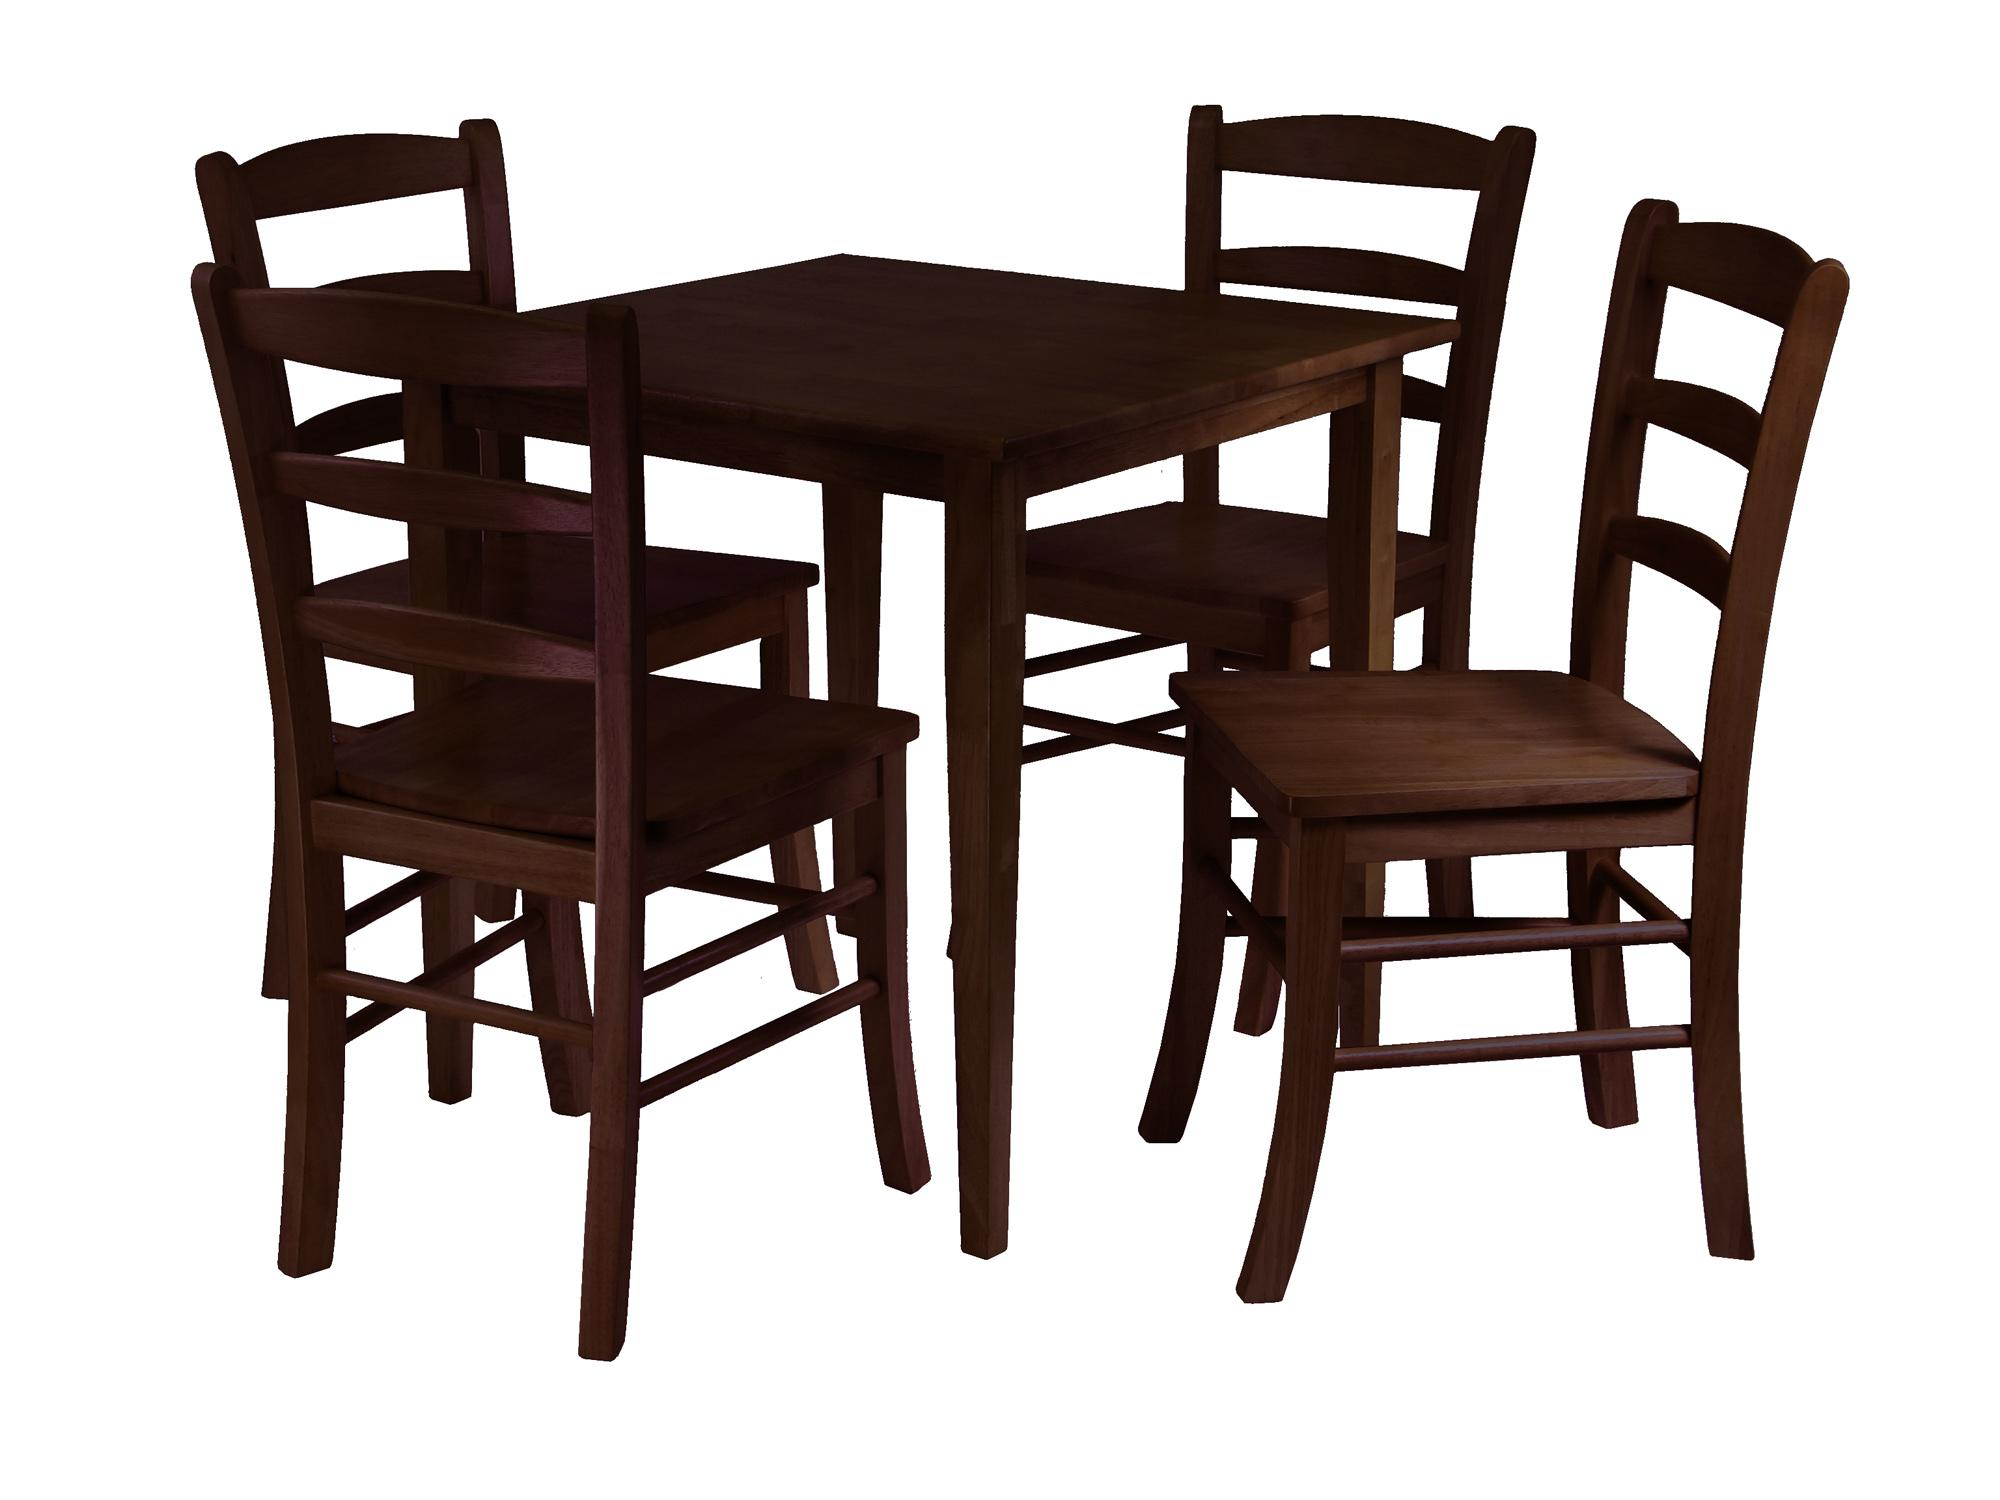 Table And Chairs Clipart | Clipart Panda - Free Clipart Images